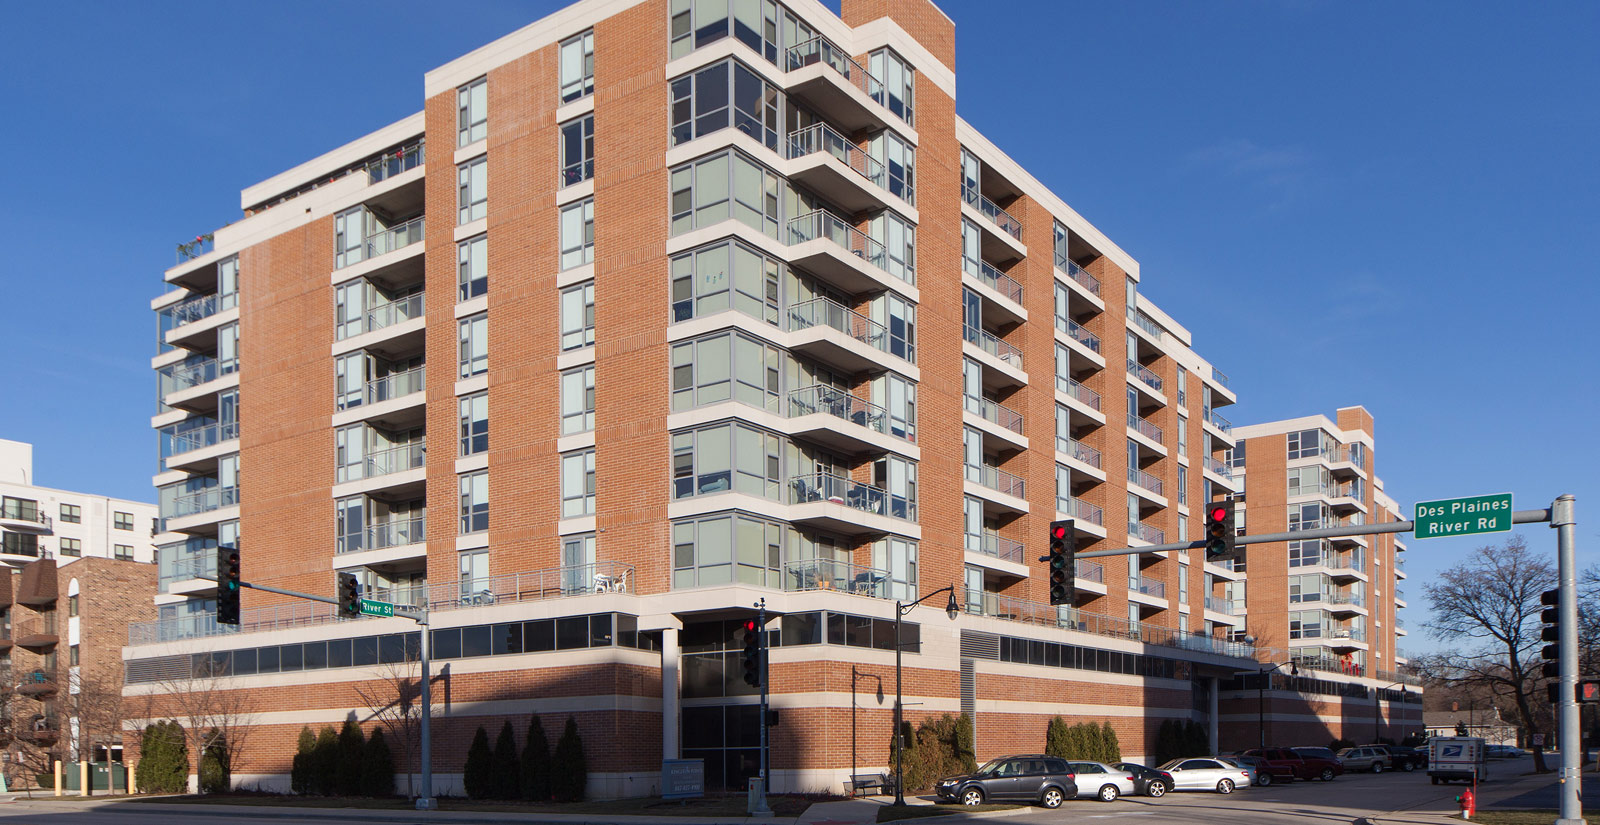 Apartments in Des Plaines are modern